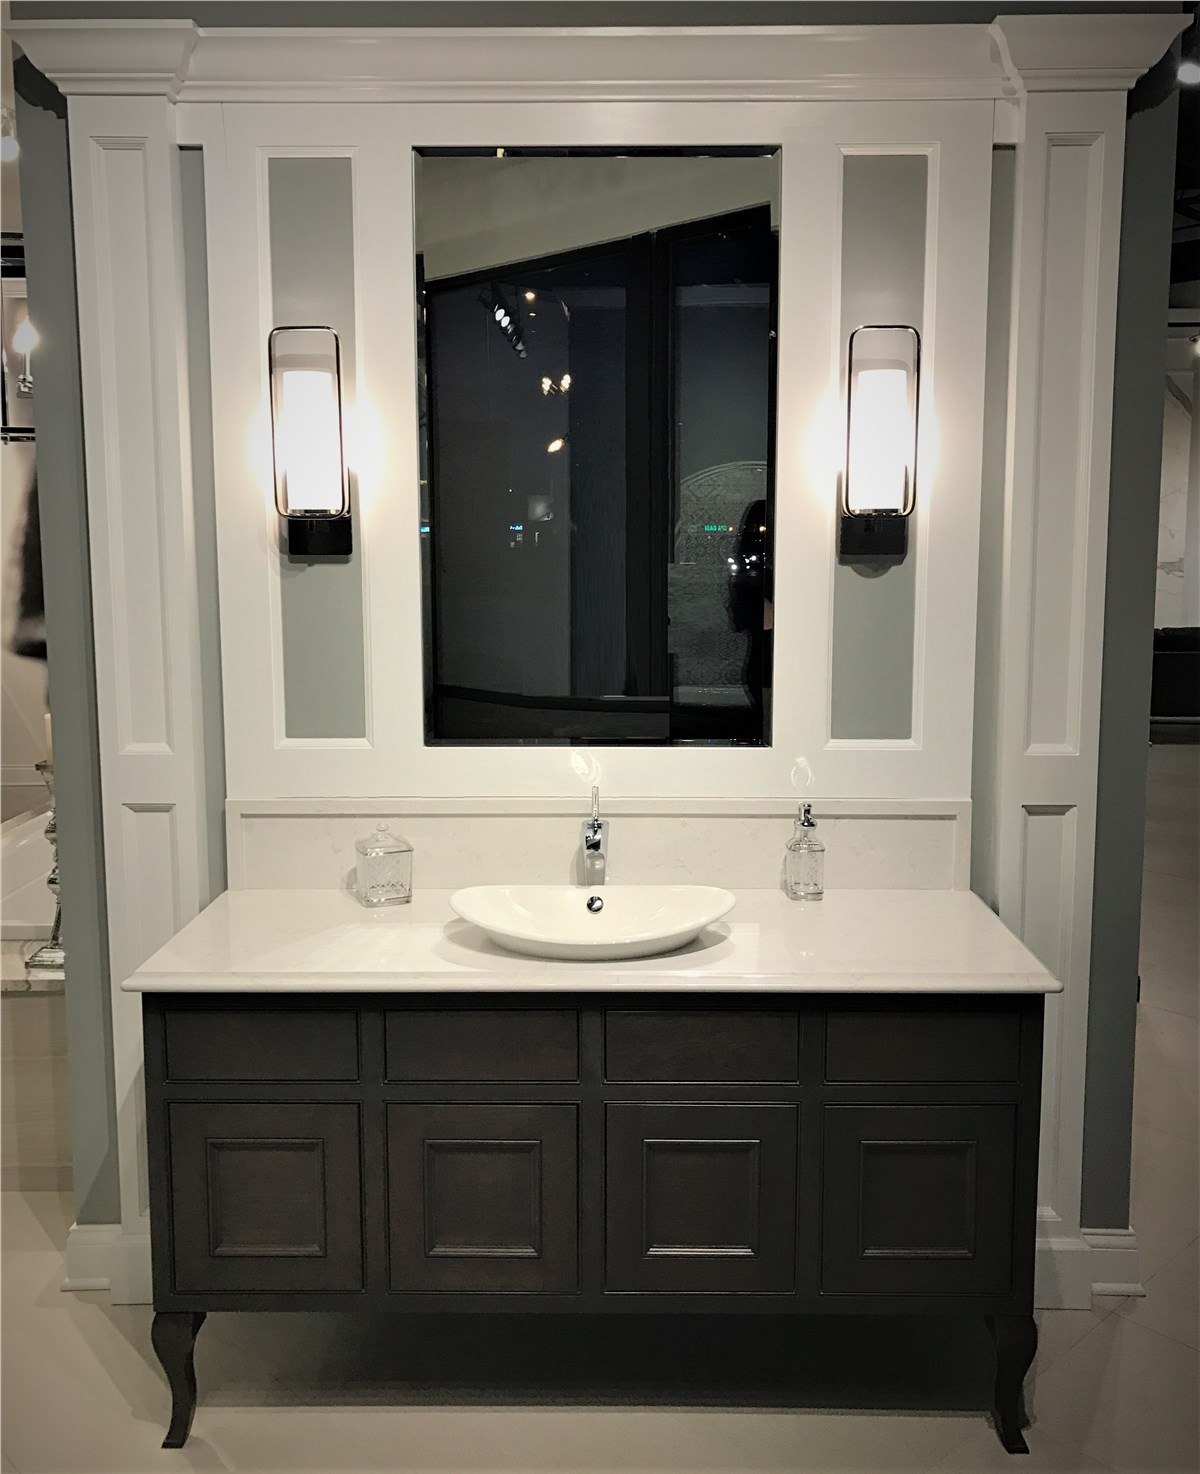 Bathroom Vanities Chicago Bathroom Vanity Replacement Homewerks Inc